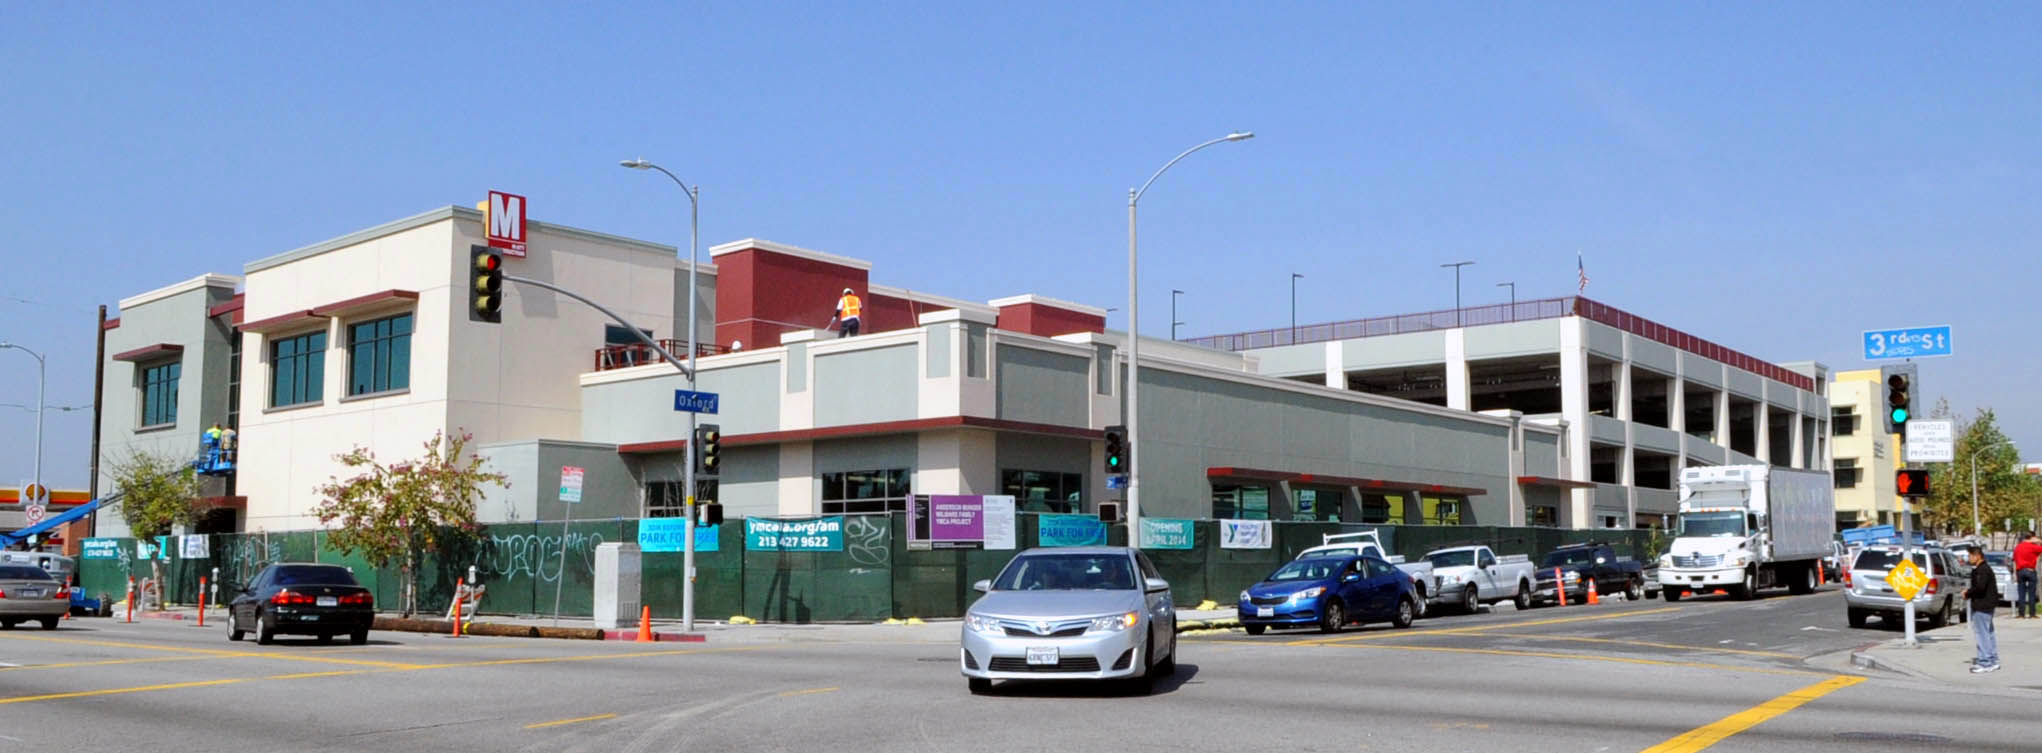 The new YMCA in Koreatown sits on 3rd Street and Oxford Avenue. (Park Sang-hyuk)